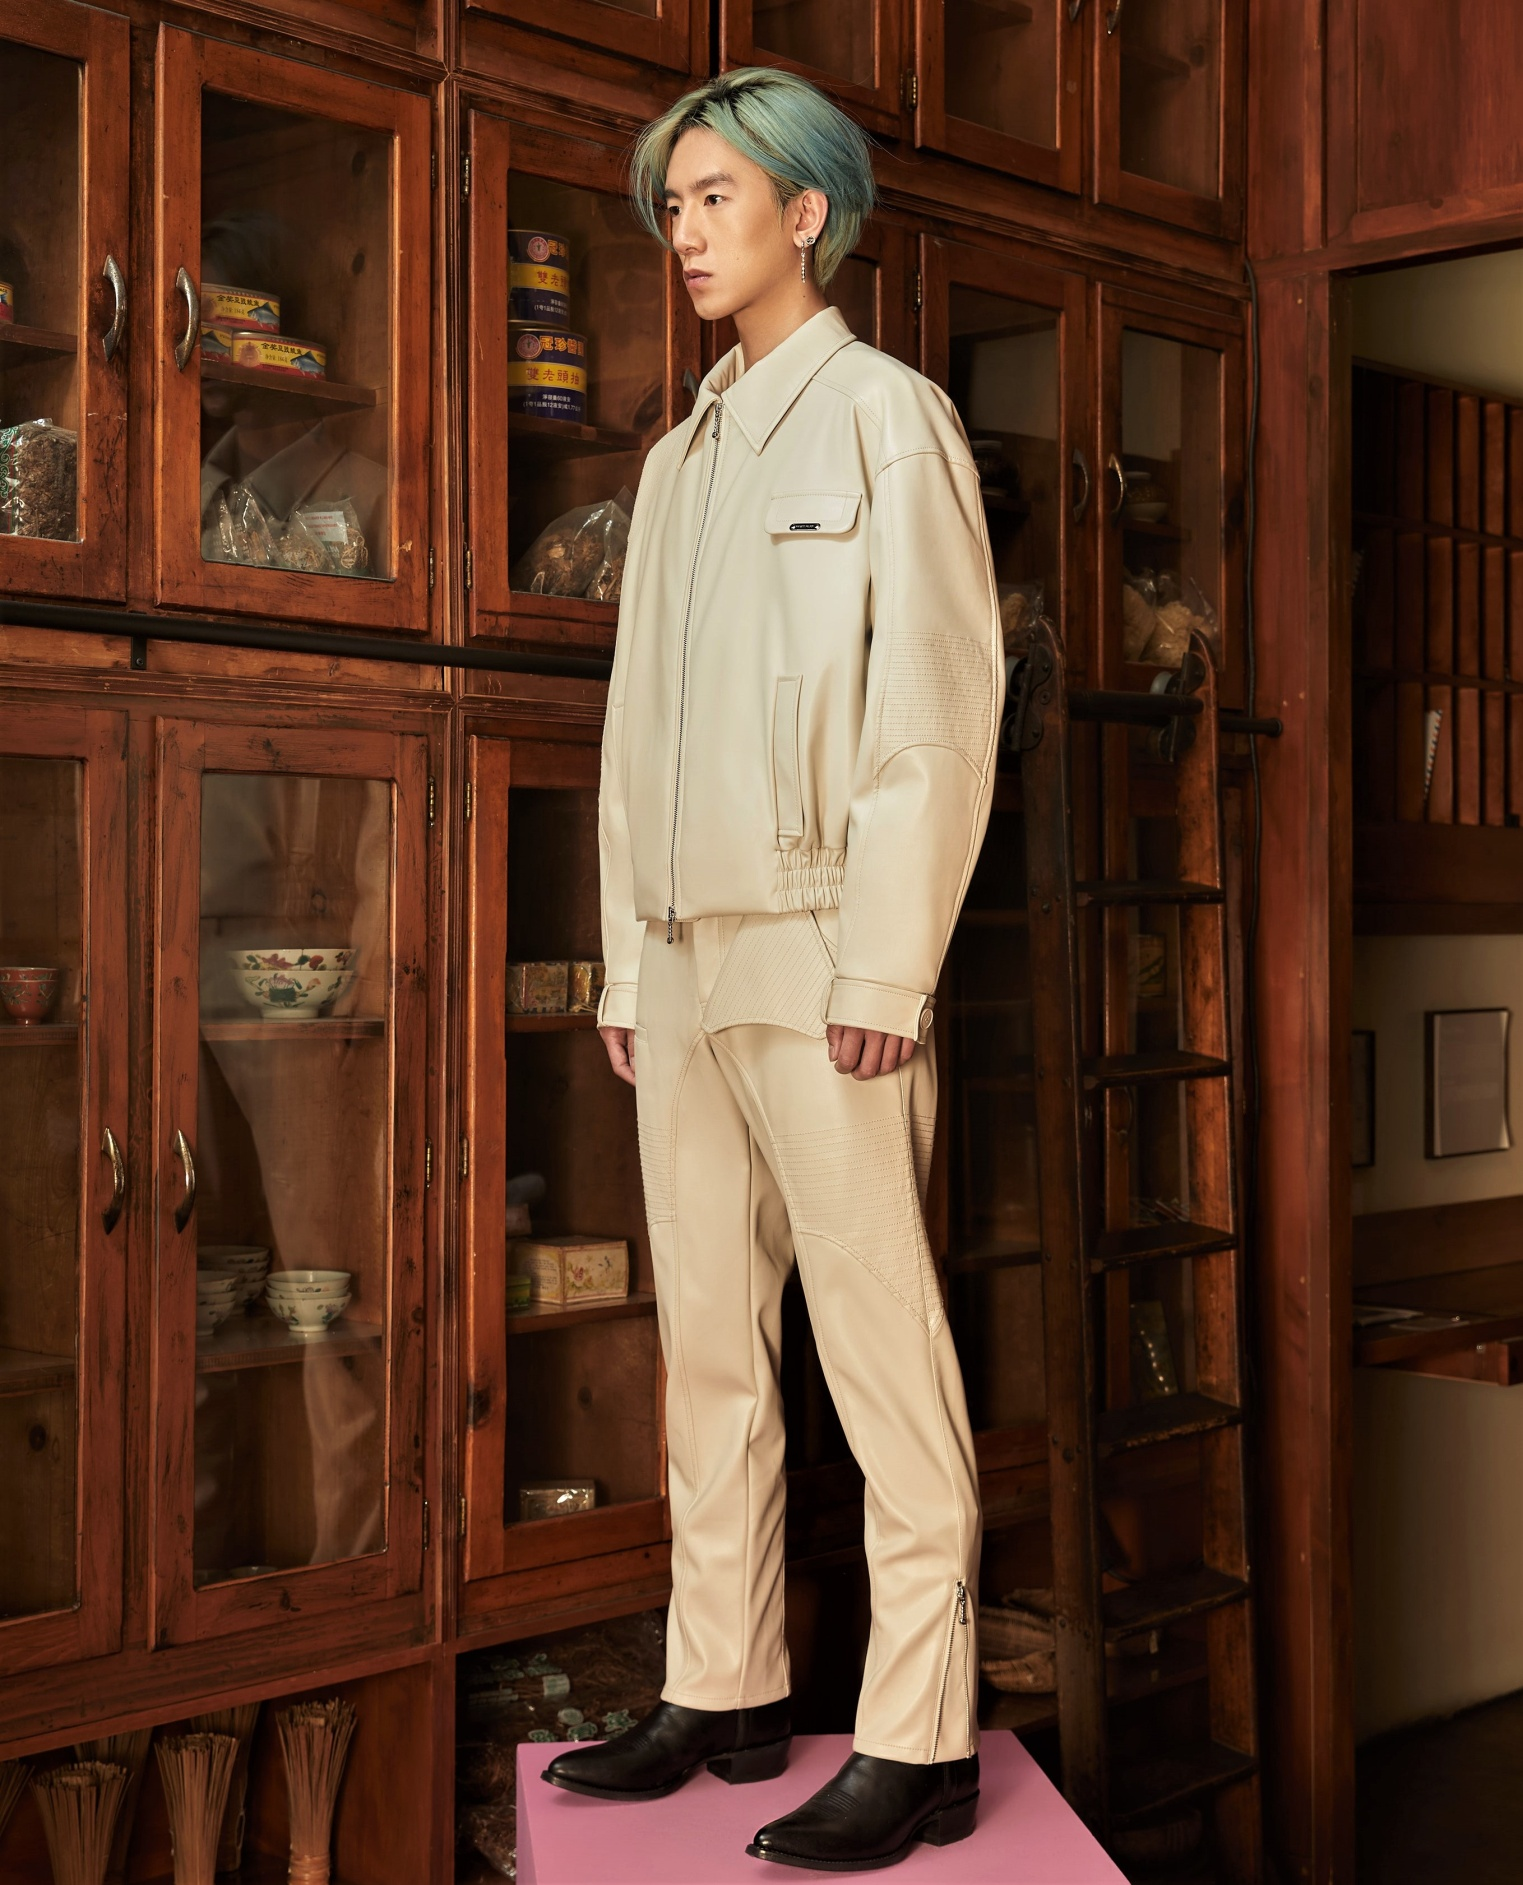 NYFW Private Policy Fall 2-21 Wht mens vogue cropped.jpg